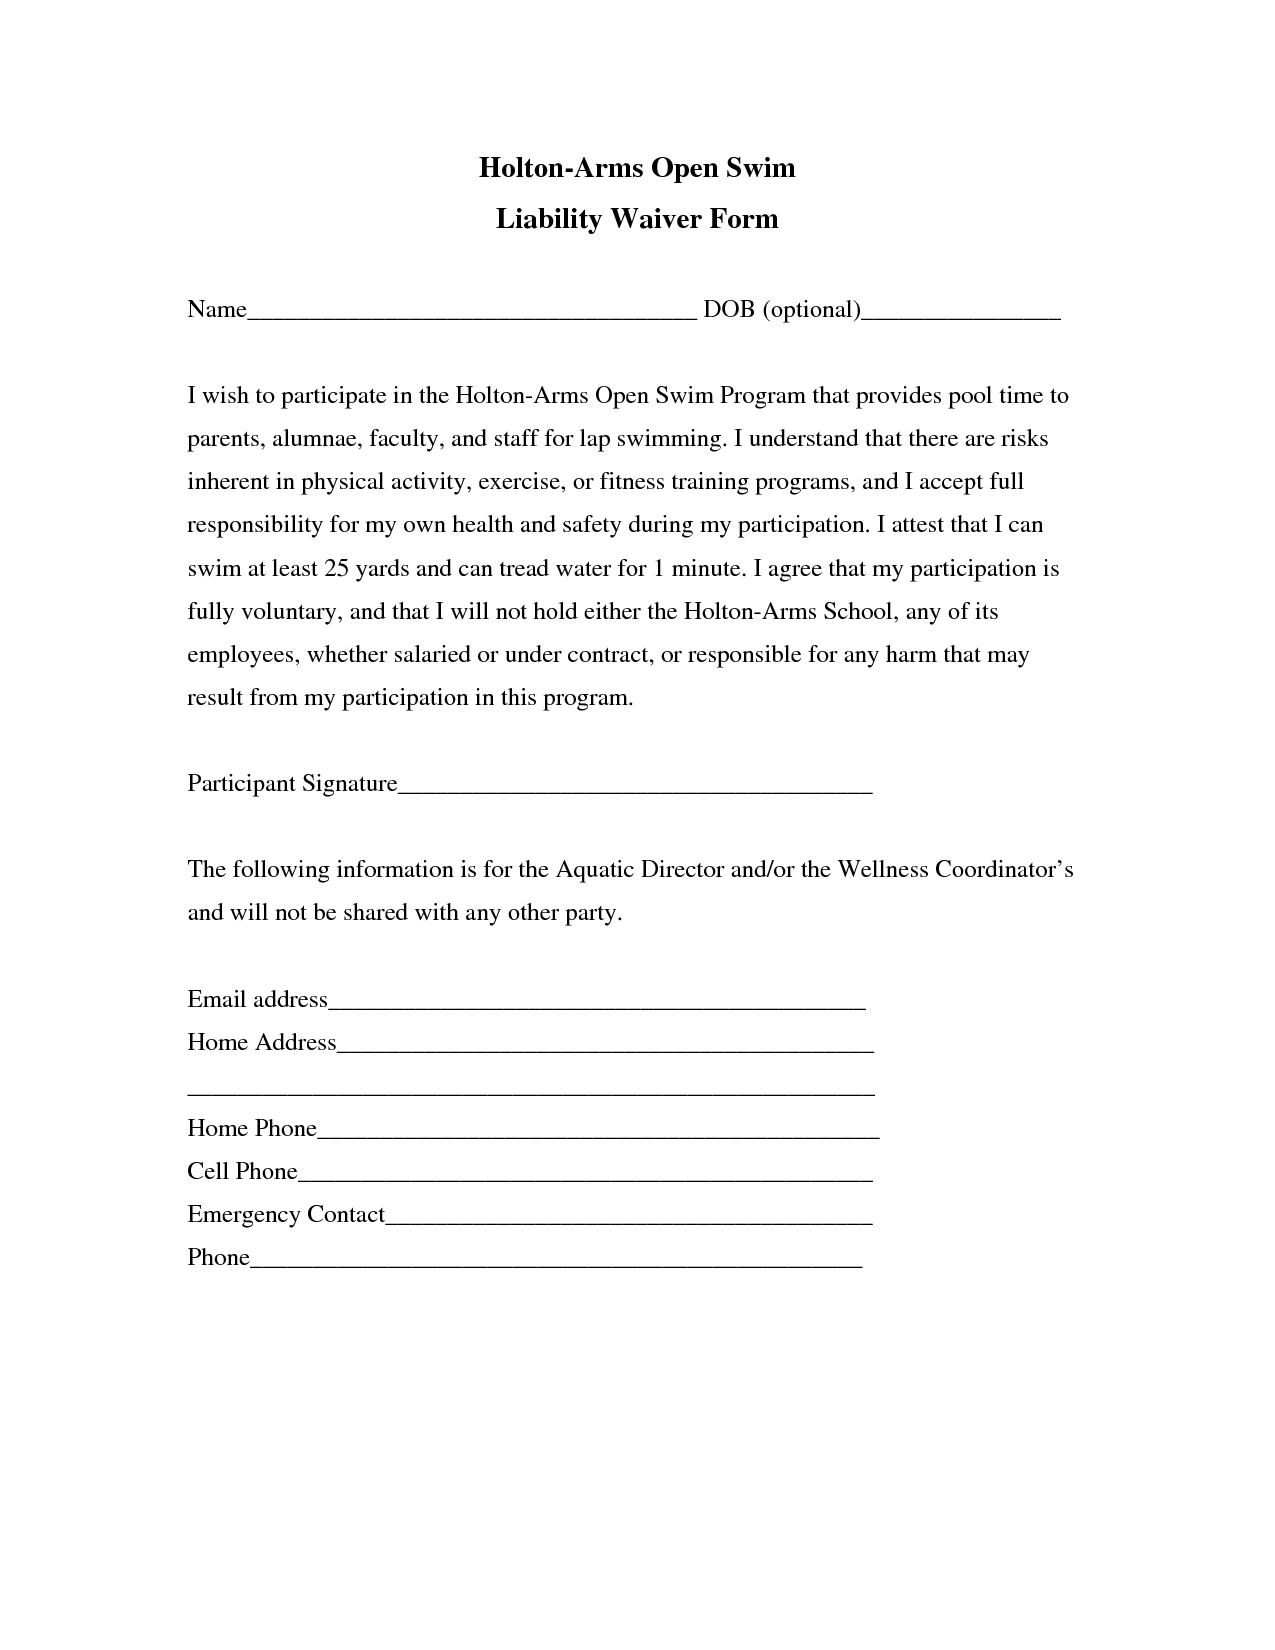 Free Liability Waiver Template free printable liability release – General Liability Waiver